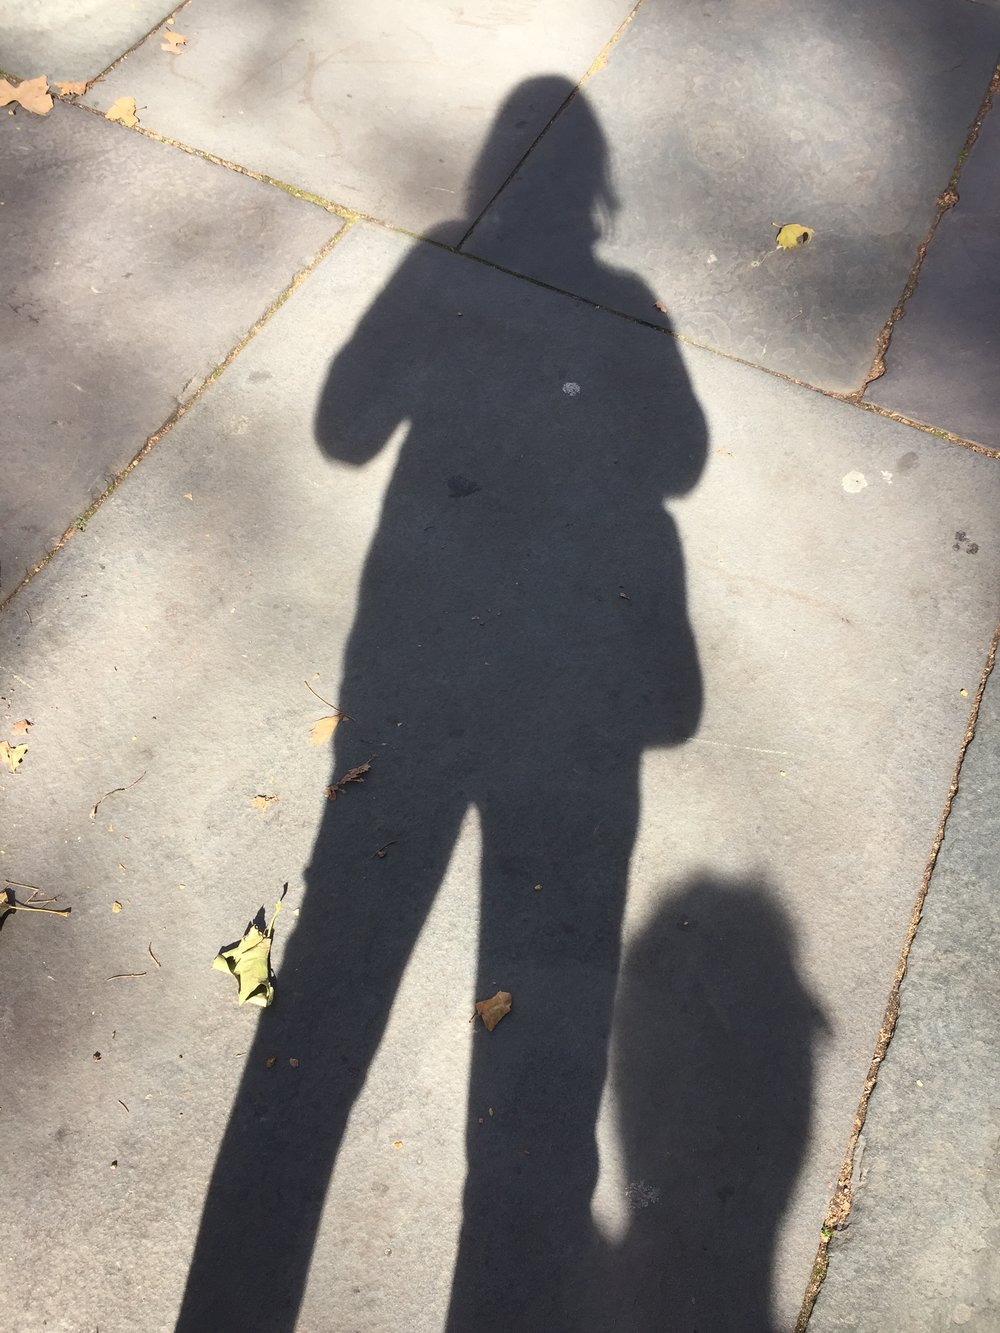 Catching my shadow while wandering around Philadelphia this past weekend